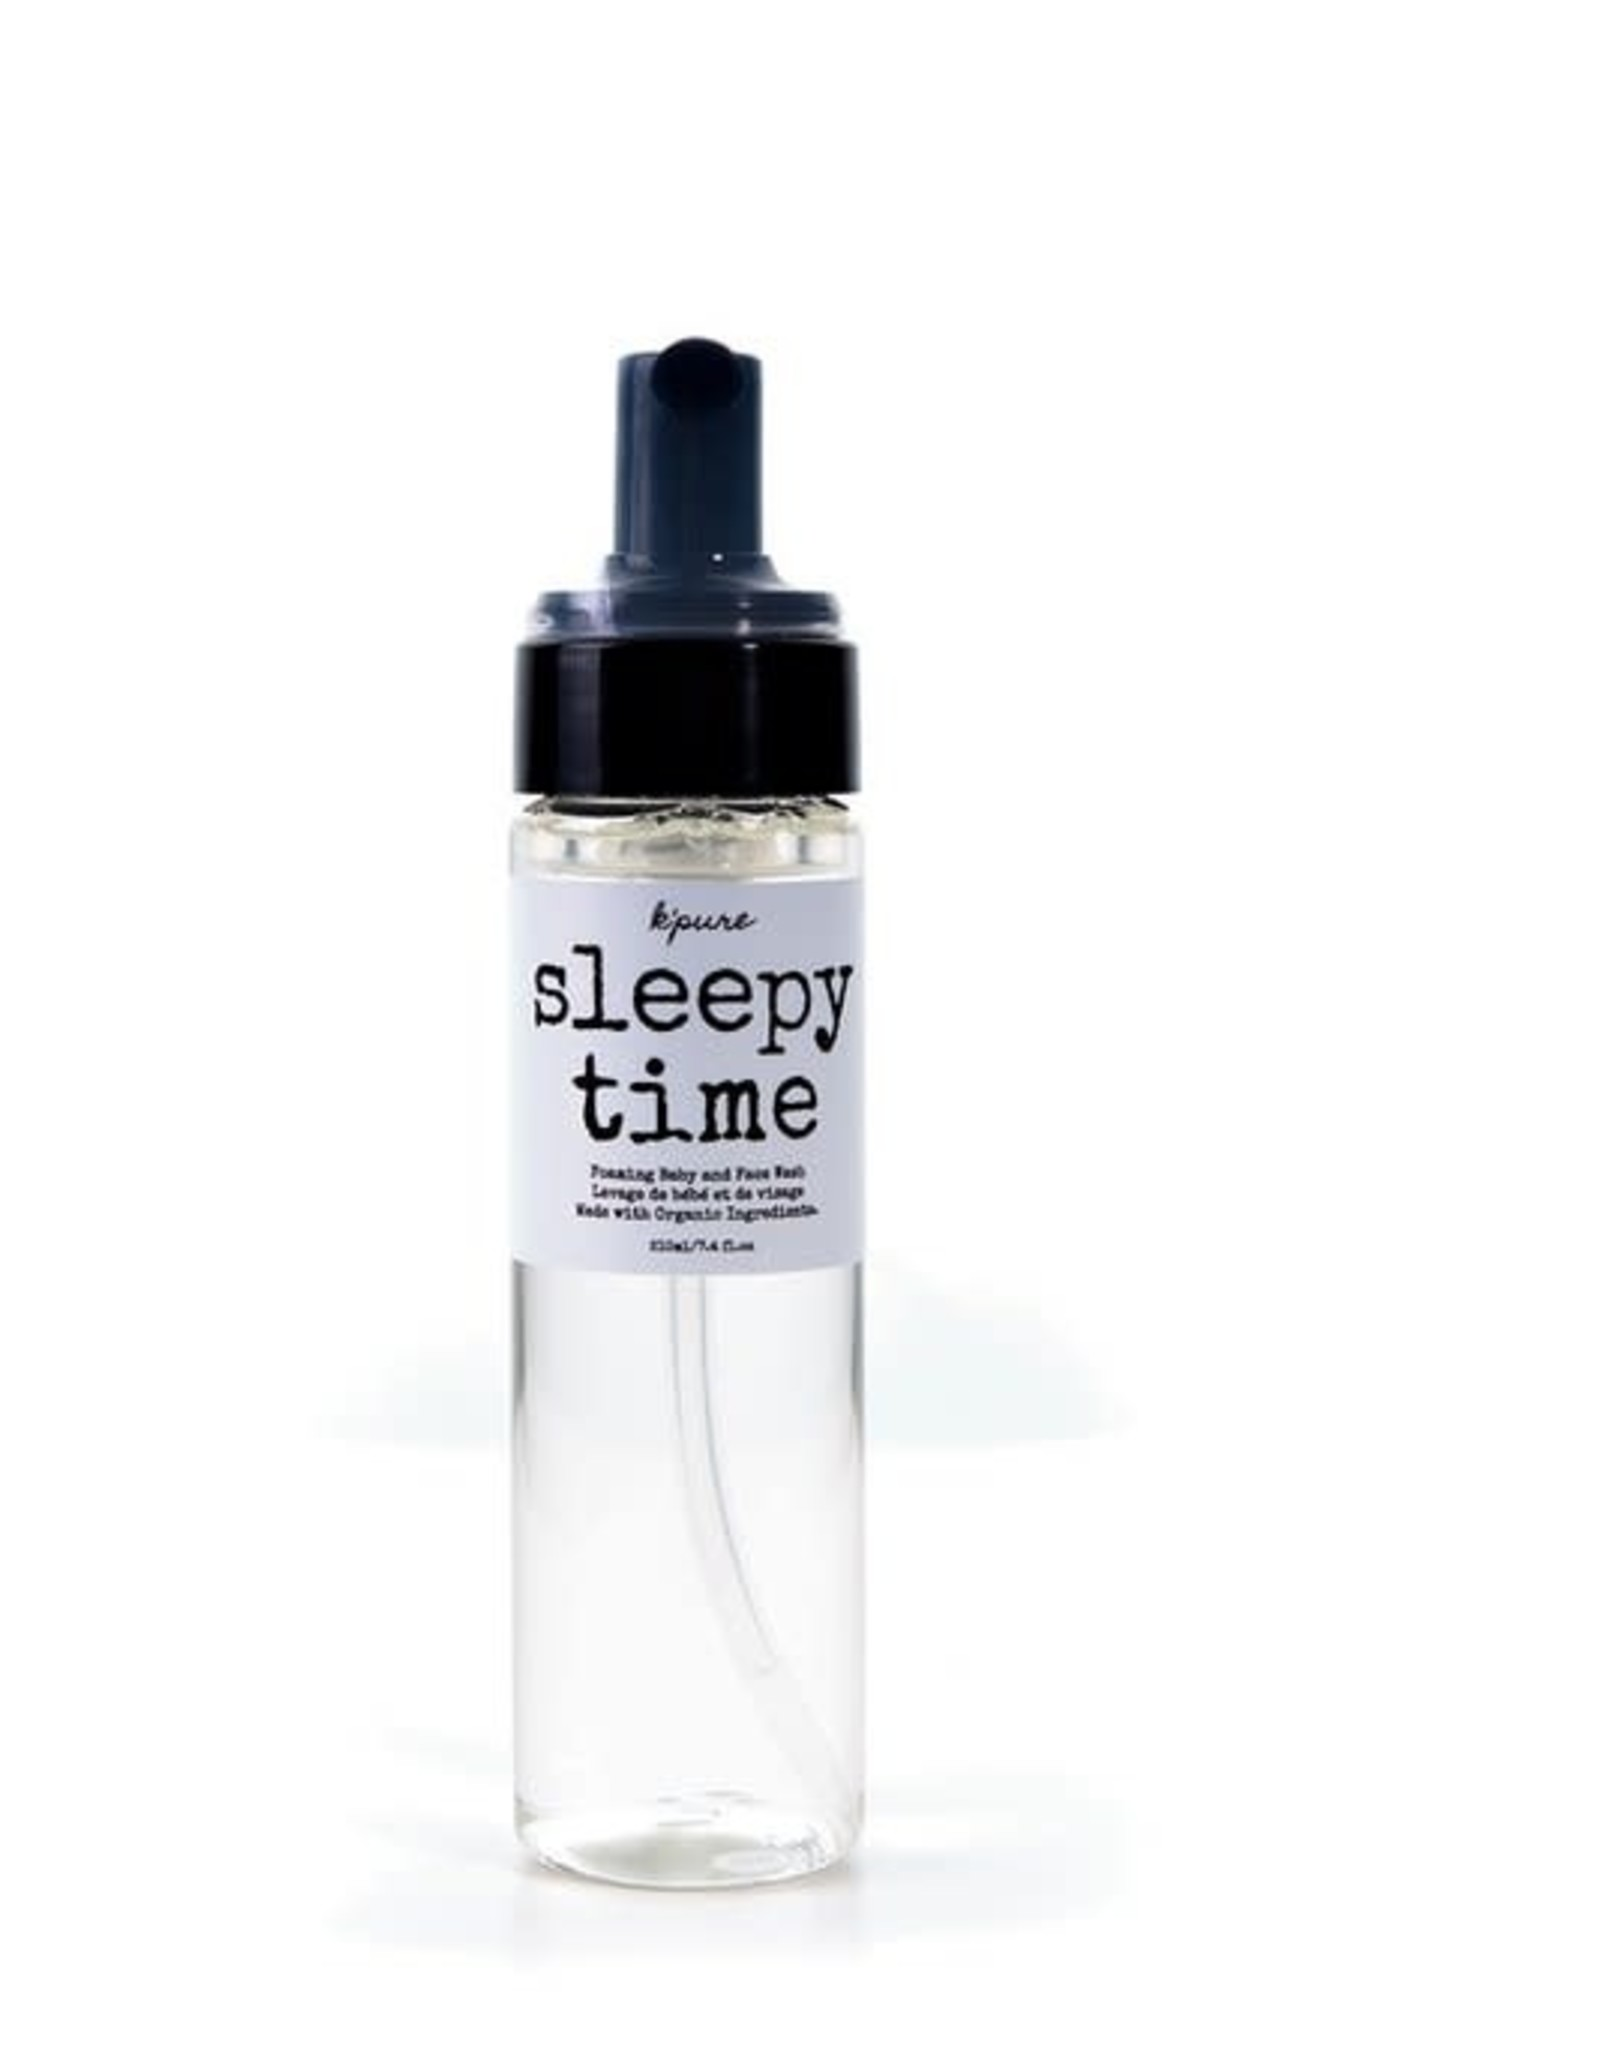 K'Pure Sleepy Time 50ml Foaming Wash